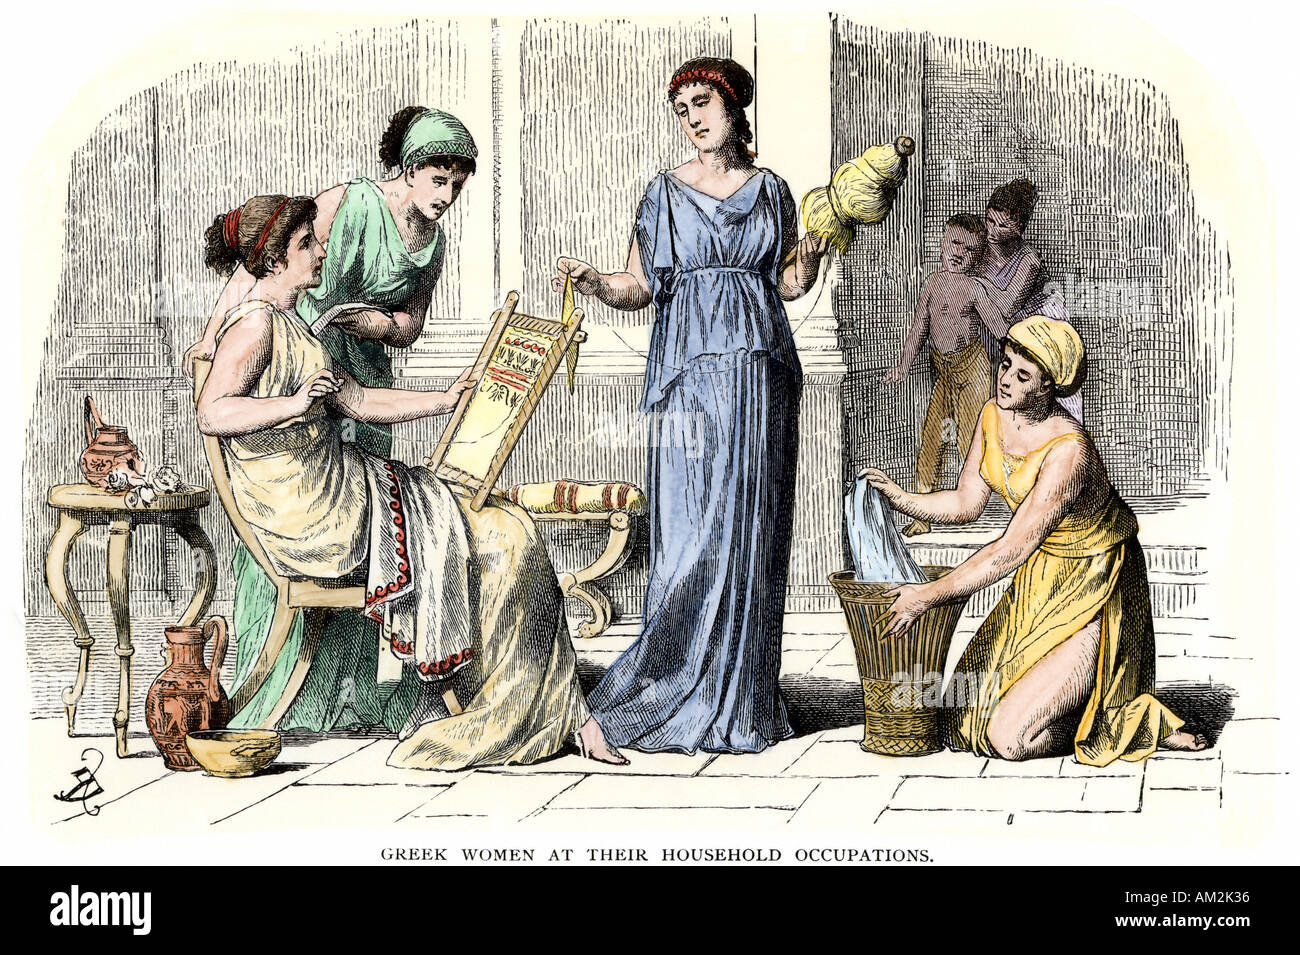 women of ancient greece Women in ancient athens had very little choices open to them if they were lucky, they could read a little, play an instrument, and owned slaves to do the daily household tasks.